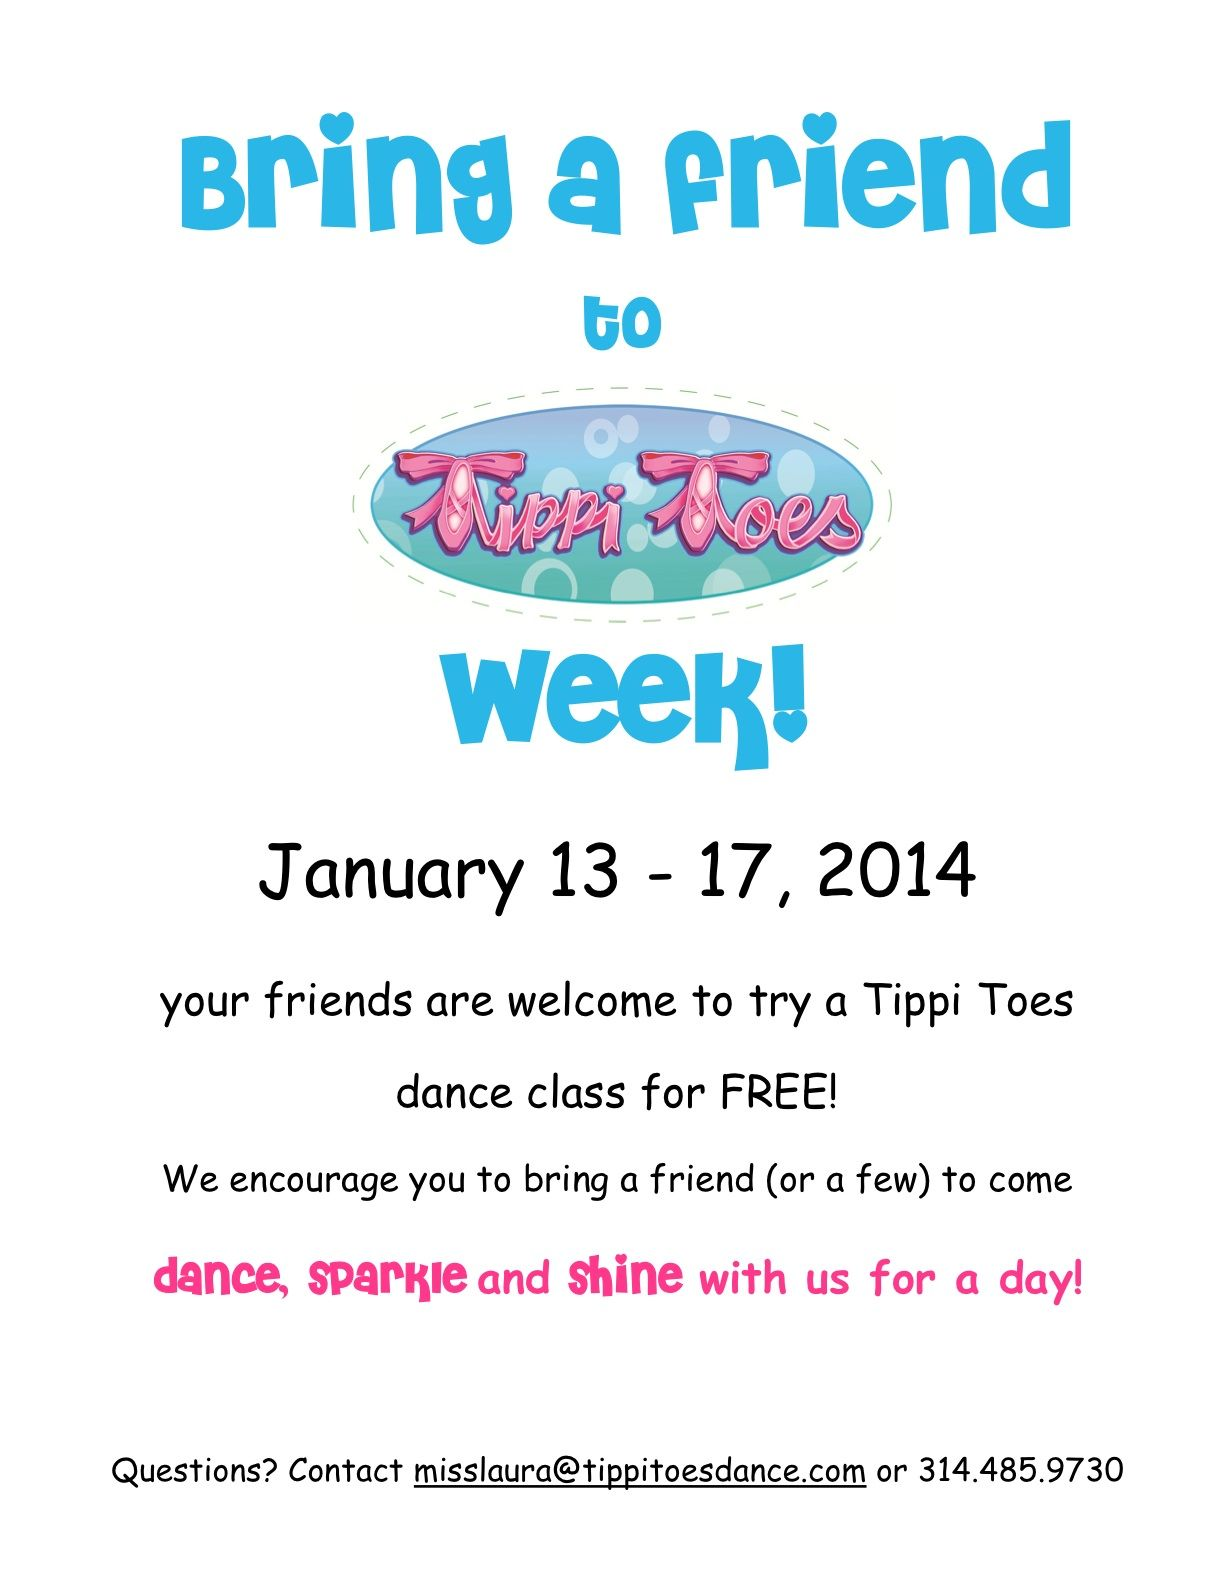 Bring A Friend Week It S Free Every Dancer Who Brings A Friend Gets Entered To Win A Free Month Of Tuitio Bring A Friend Encouragement This Or That Questions